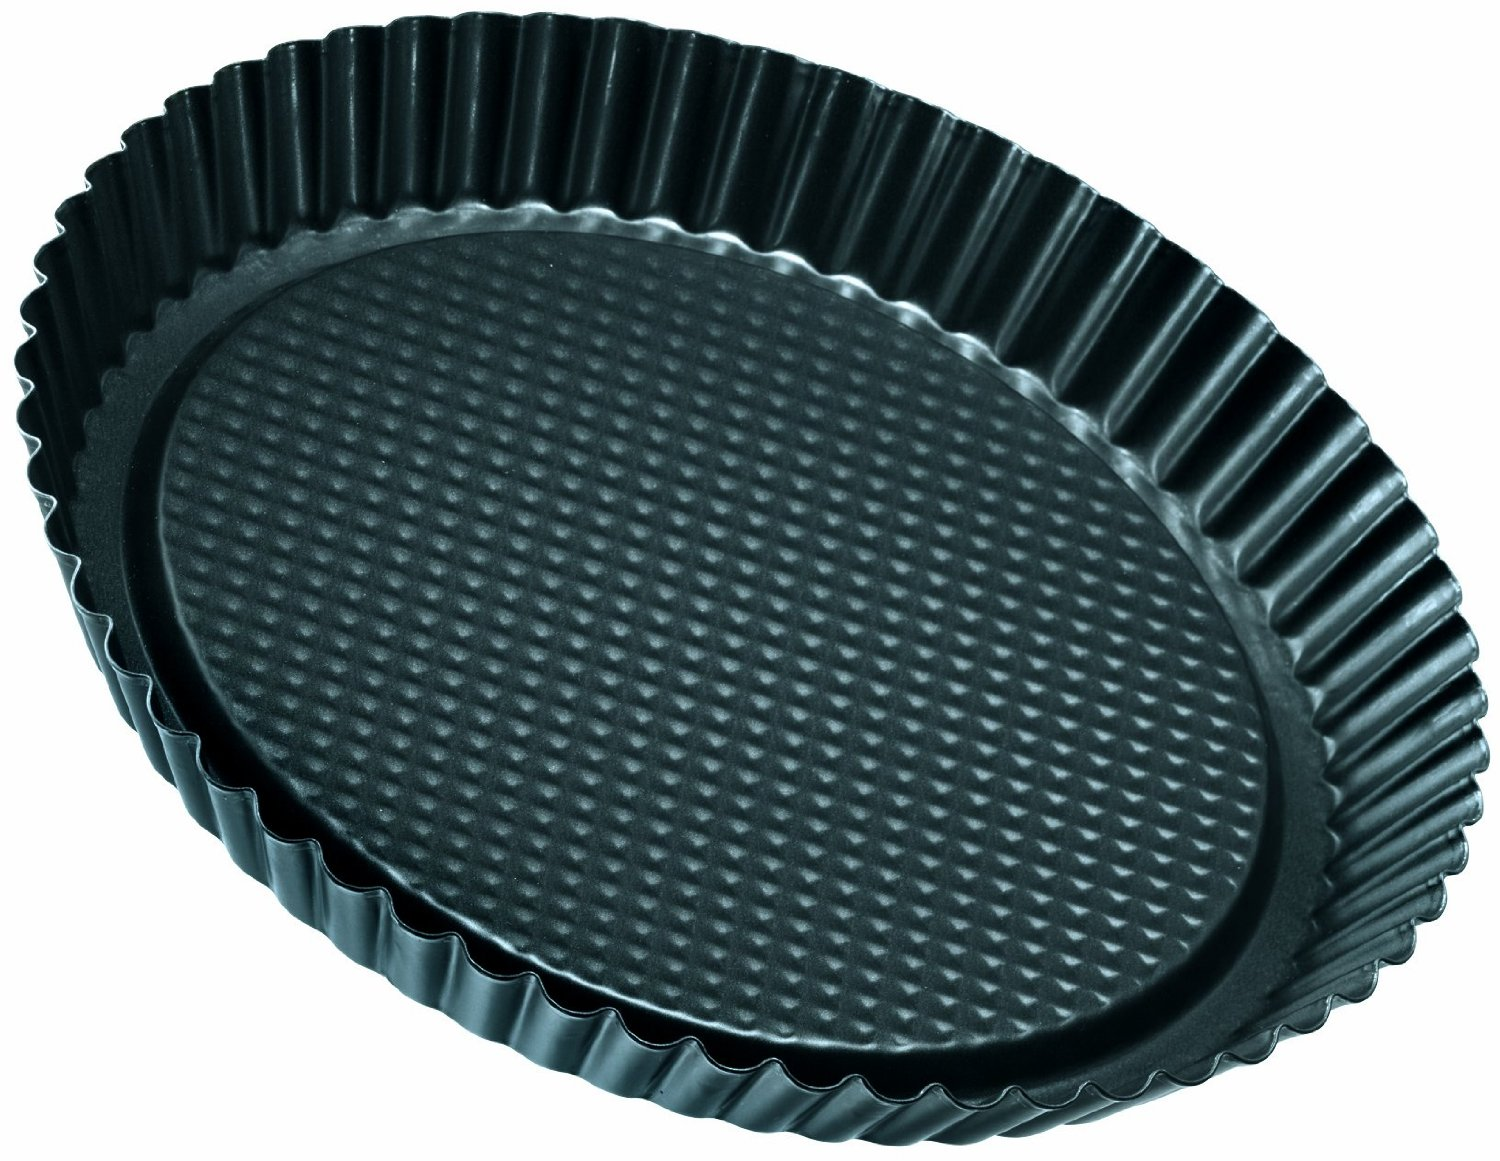 Mini Pie Pans Ideas For Beginner Cook Homesfeed Interiors Inside Ideas Interiors design about Everything [magnanprojects.com]